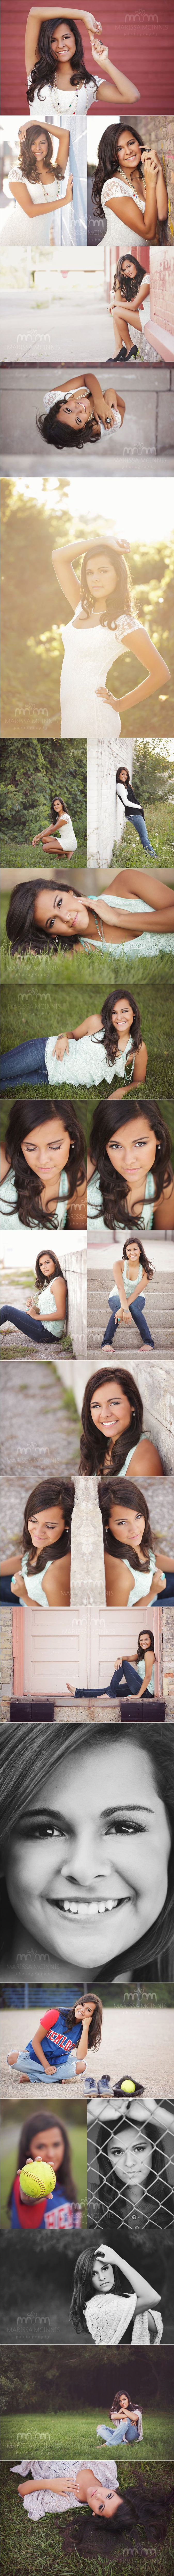 Probably need idea for poses for senior pictures